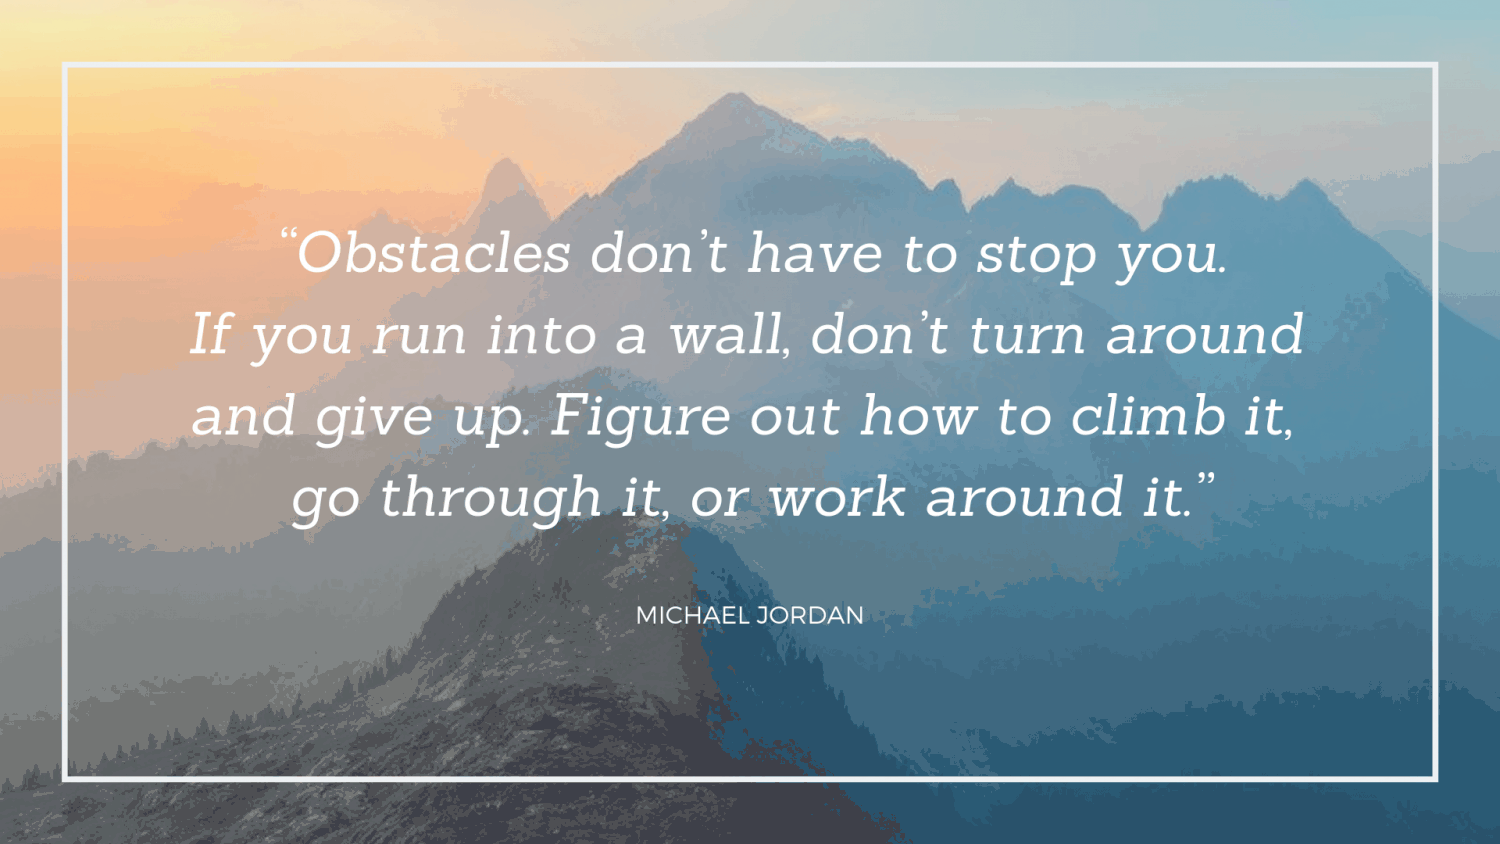 Obstacles don't have to stop you. If you run into a wall, don't turn around and give up. Figure out how to climb it, go through it, or work around it. – Michael Jordan [1500 X 844]